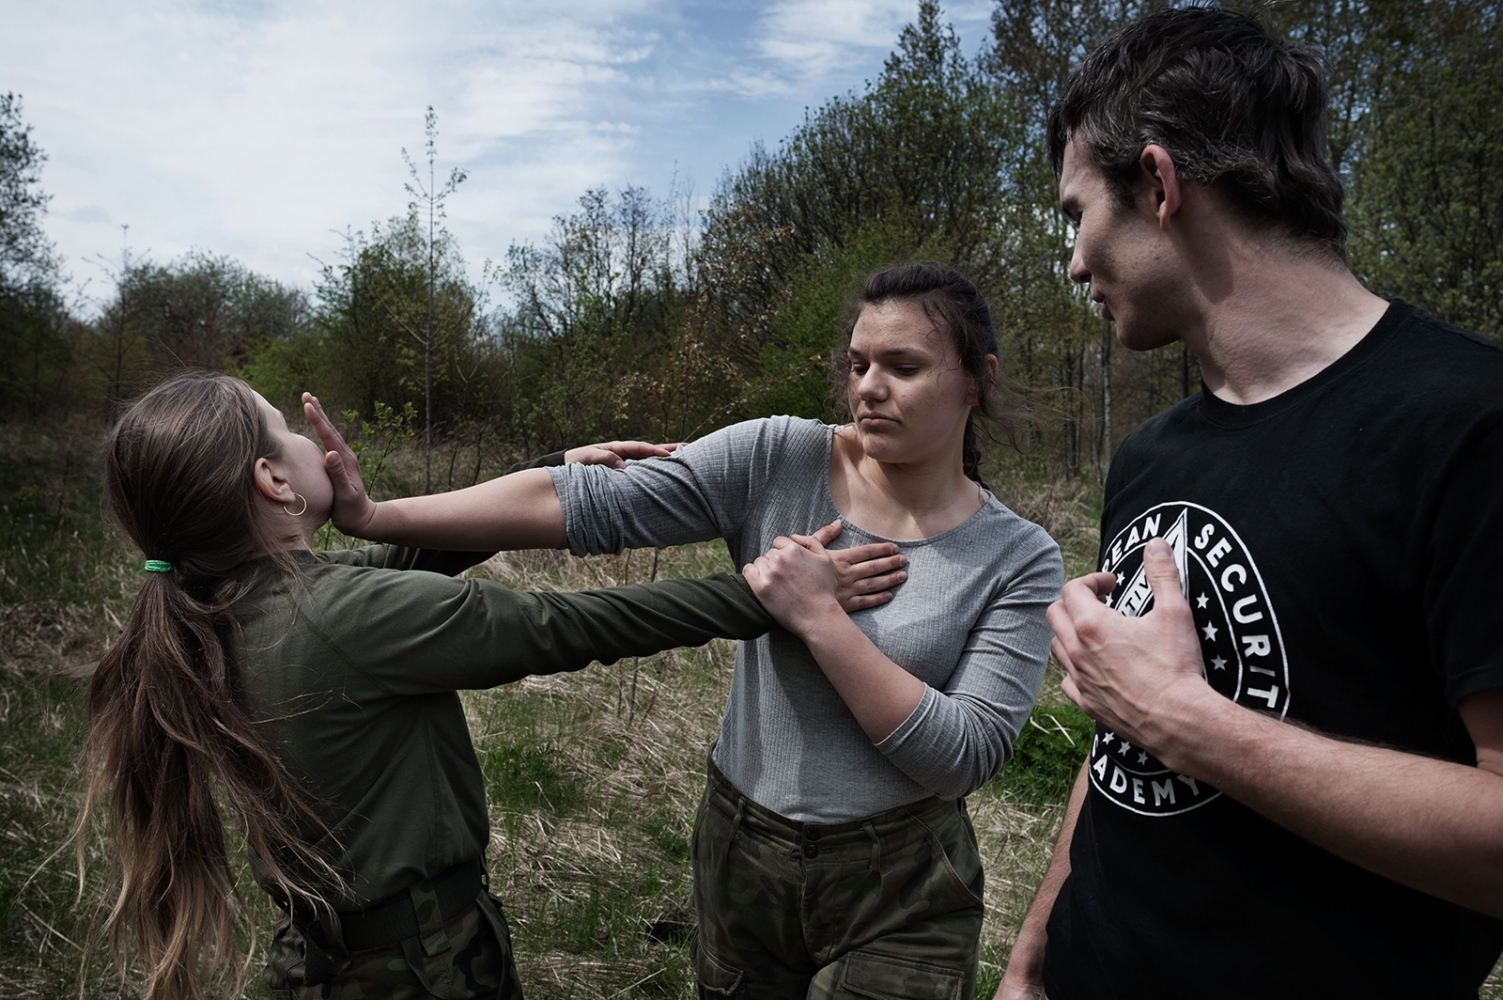 Students from the high school in Brzeg learn Krav Maga moves with inspector Kamil Zielinski of Unit 3060. Krav Maga is a martial art used by the Israeli defence and security forces. Zelinski is a former soldier, currently employed by a security firm, whose name he did not wish to disclose, but is comparable to Blackwater. Skarbimierz/Brzeg 2017